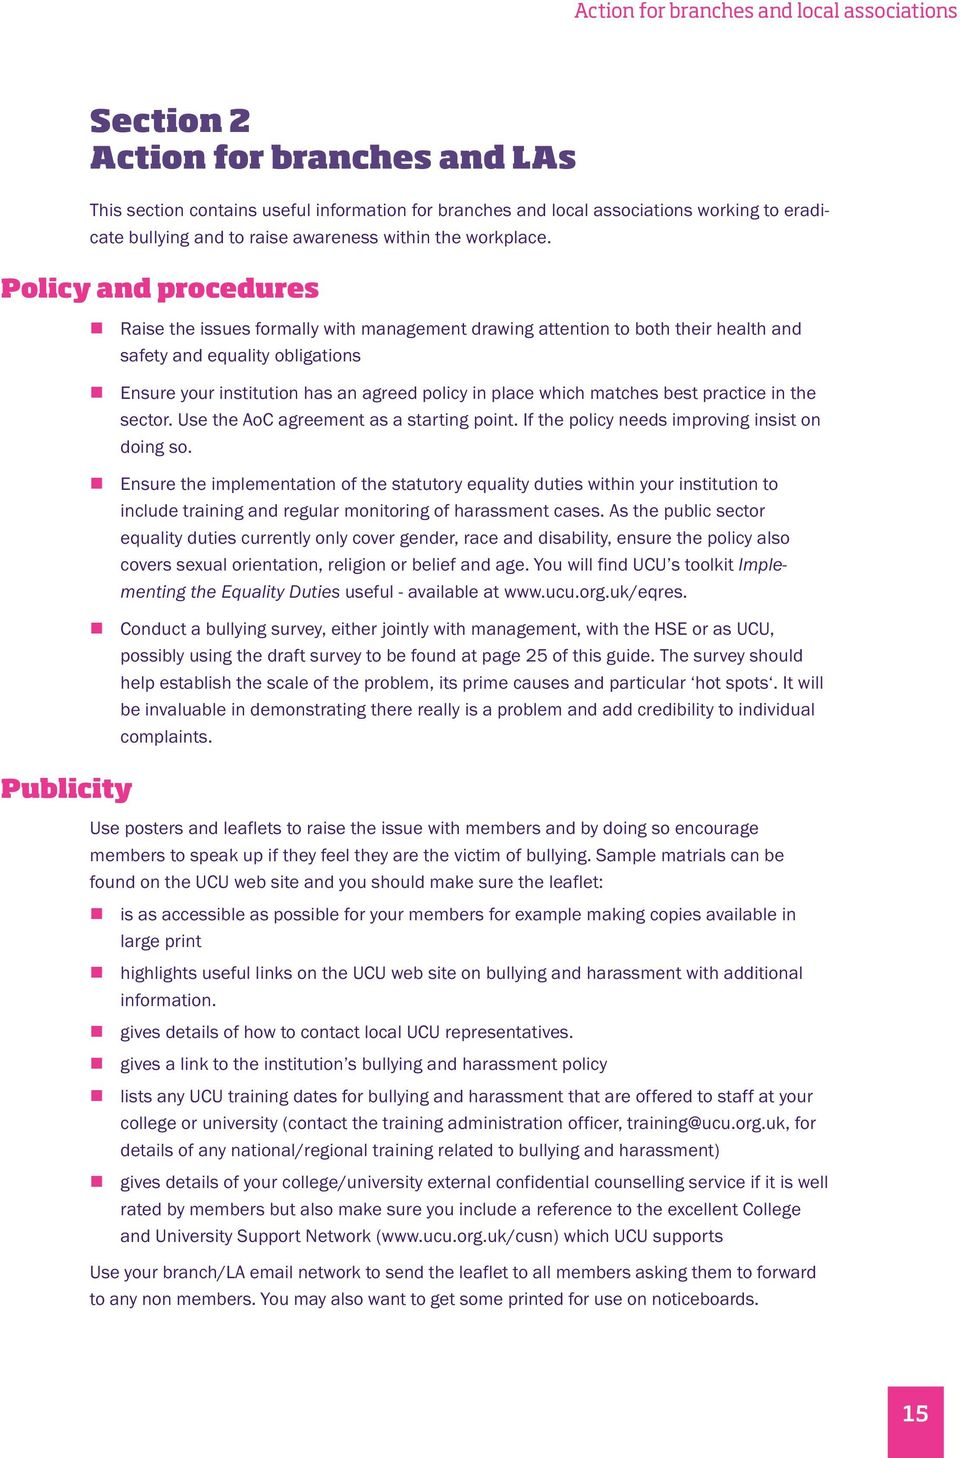 Policy and procedures Raise the issues formally with management drawing attention to both their health and safety and equality obligations Ensure your institution has an agreed policy in place which